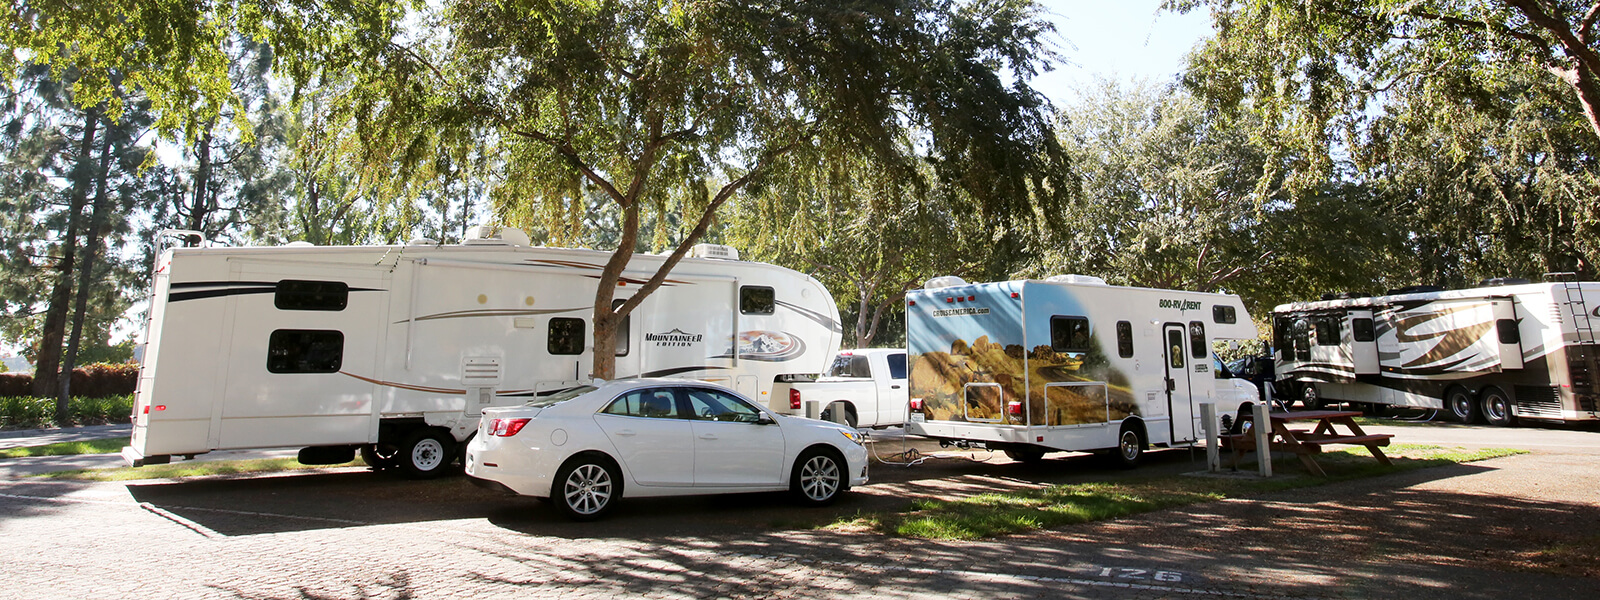 Fairplex RV Park Grounds